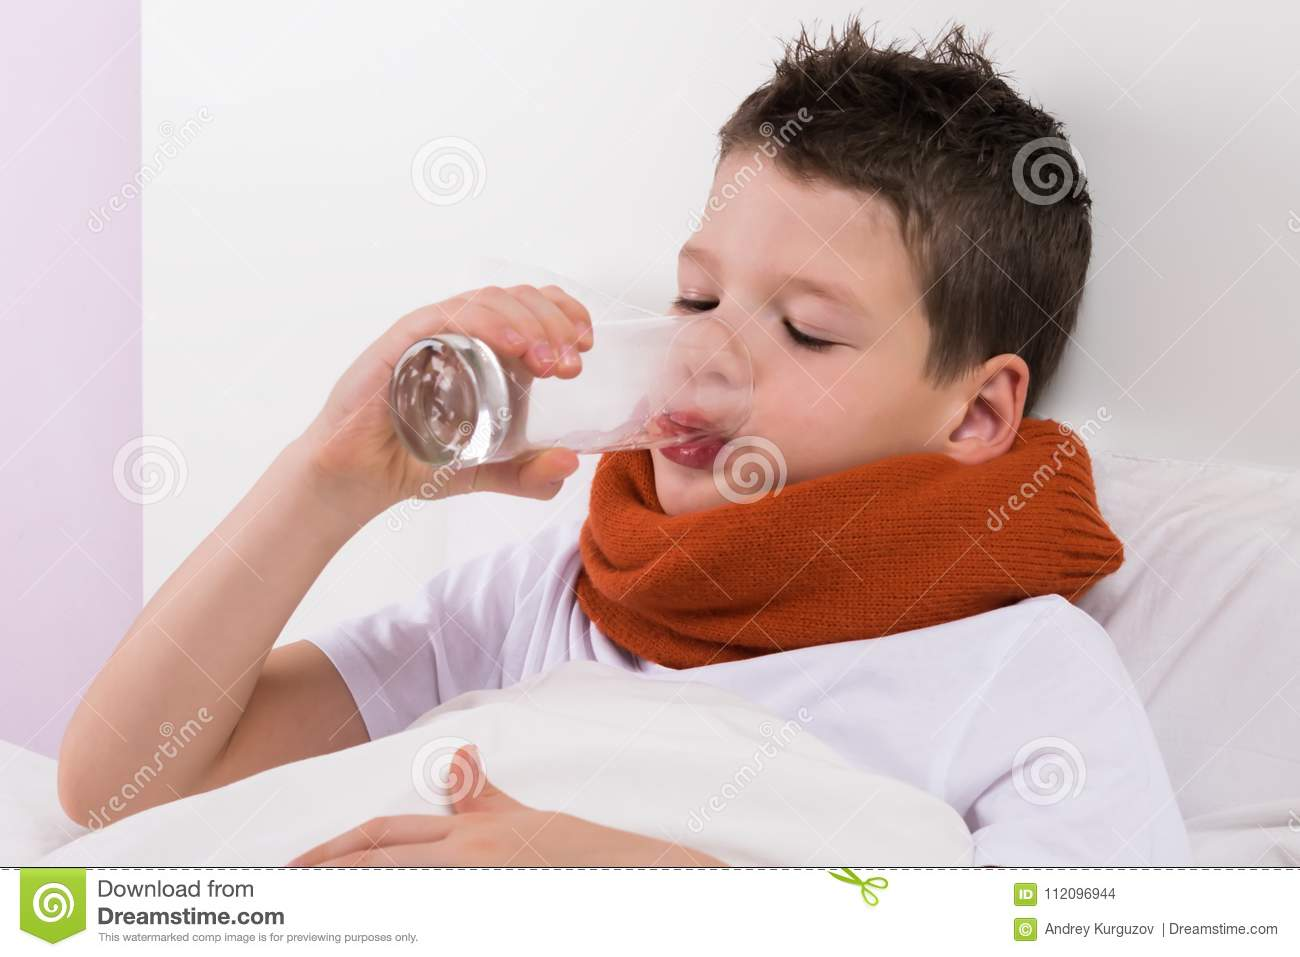 The boy in the crib drinks water from the glass, the doctors recommendations in case of illness